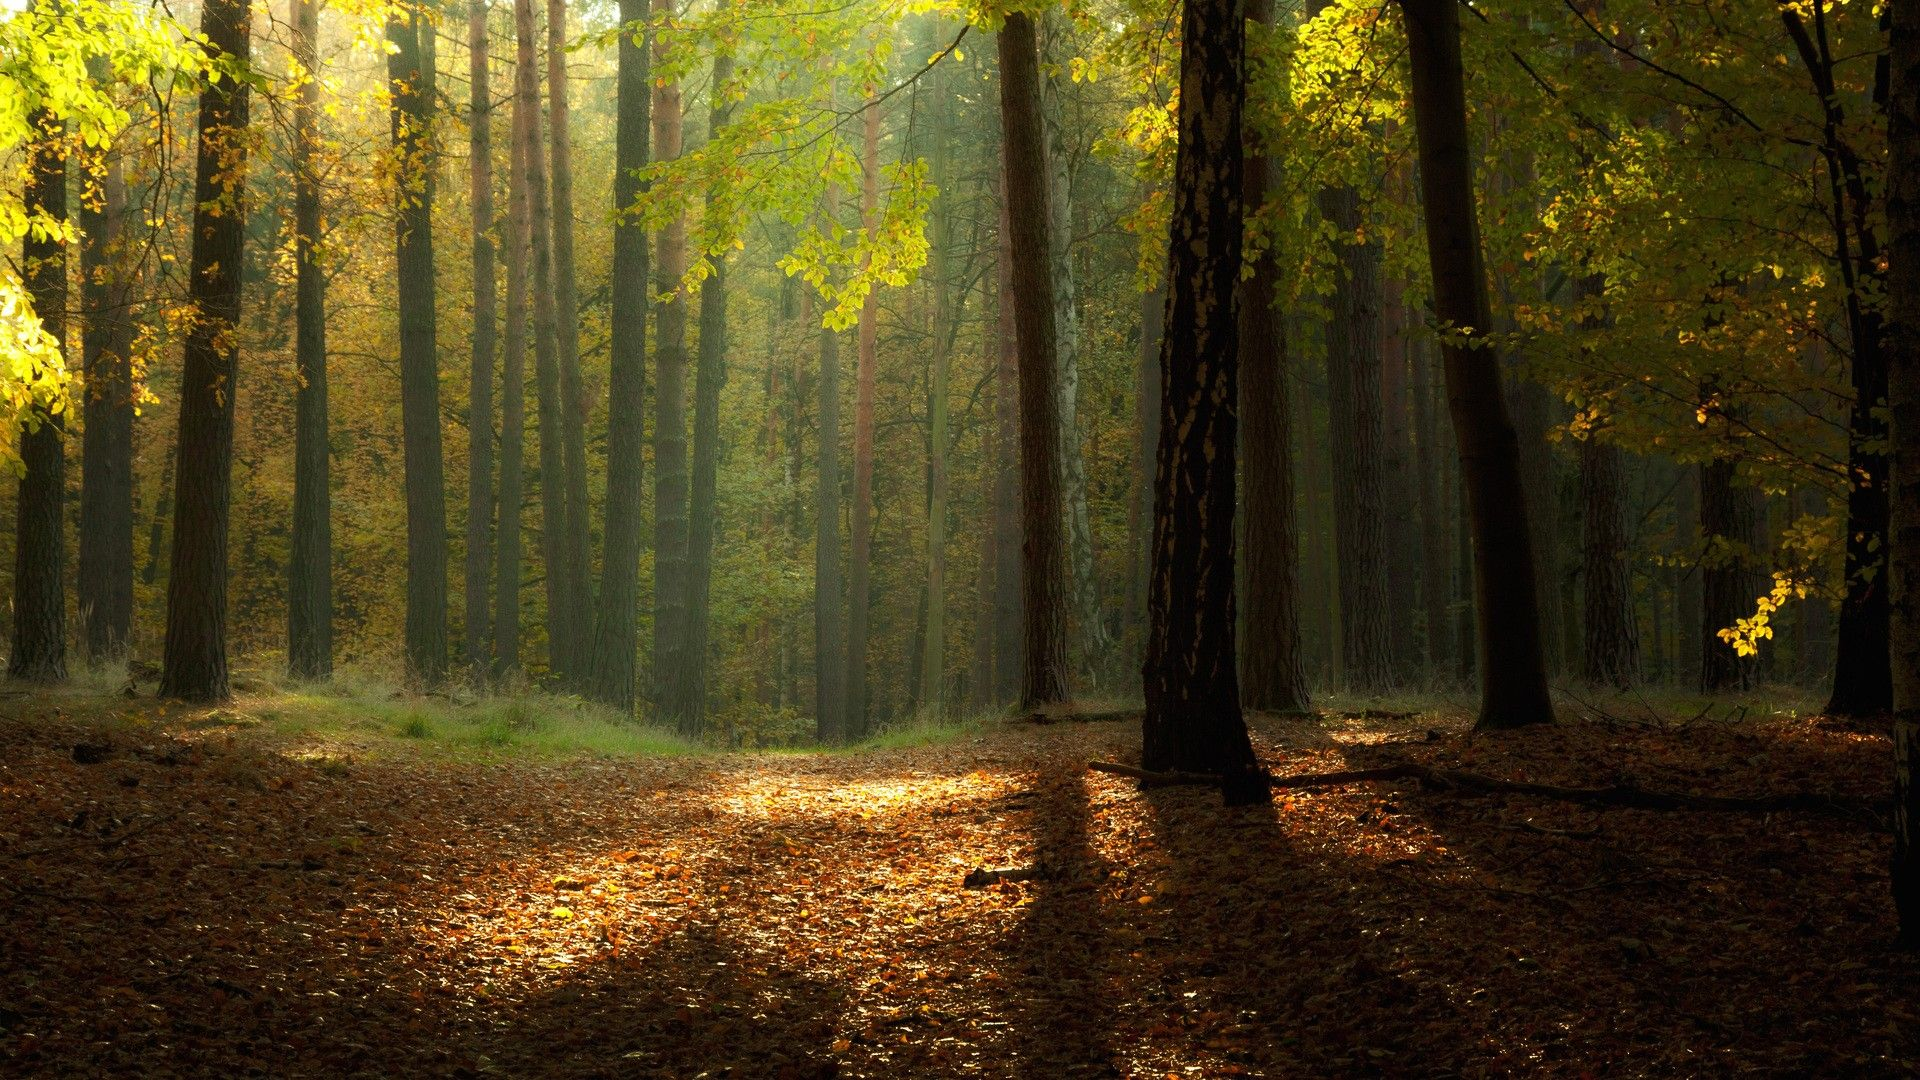 Forest Landscape Wallpapers For Android | emy elbadry | Pinterest ...